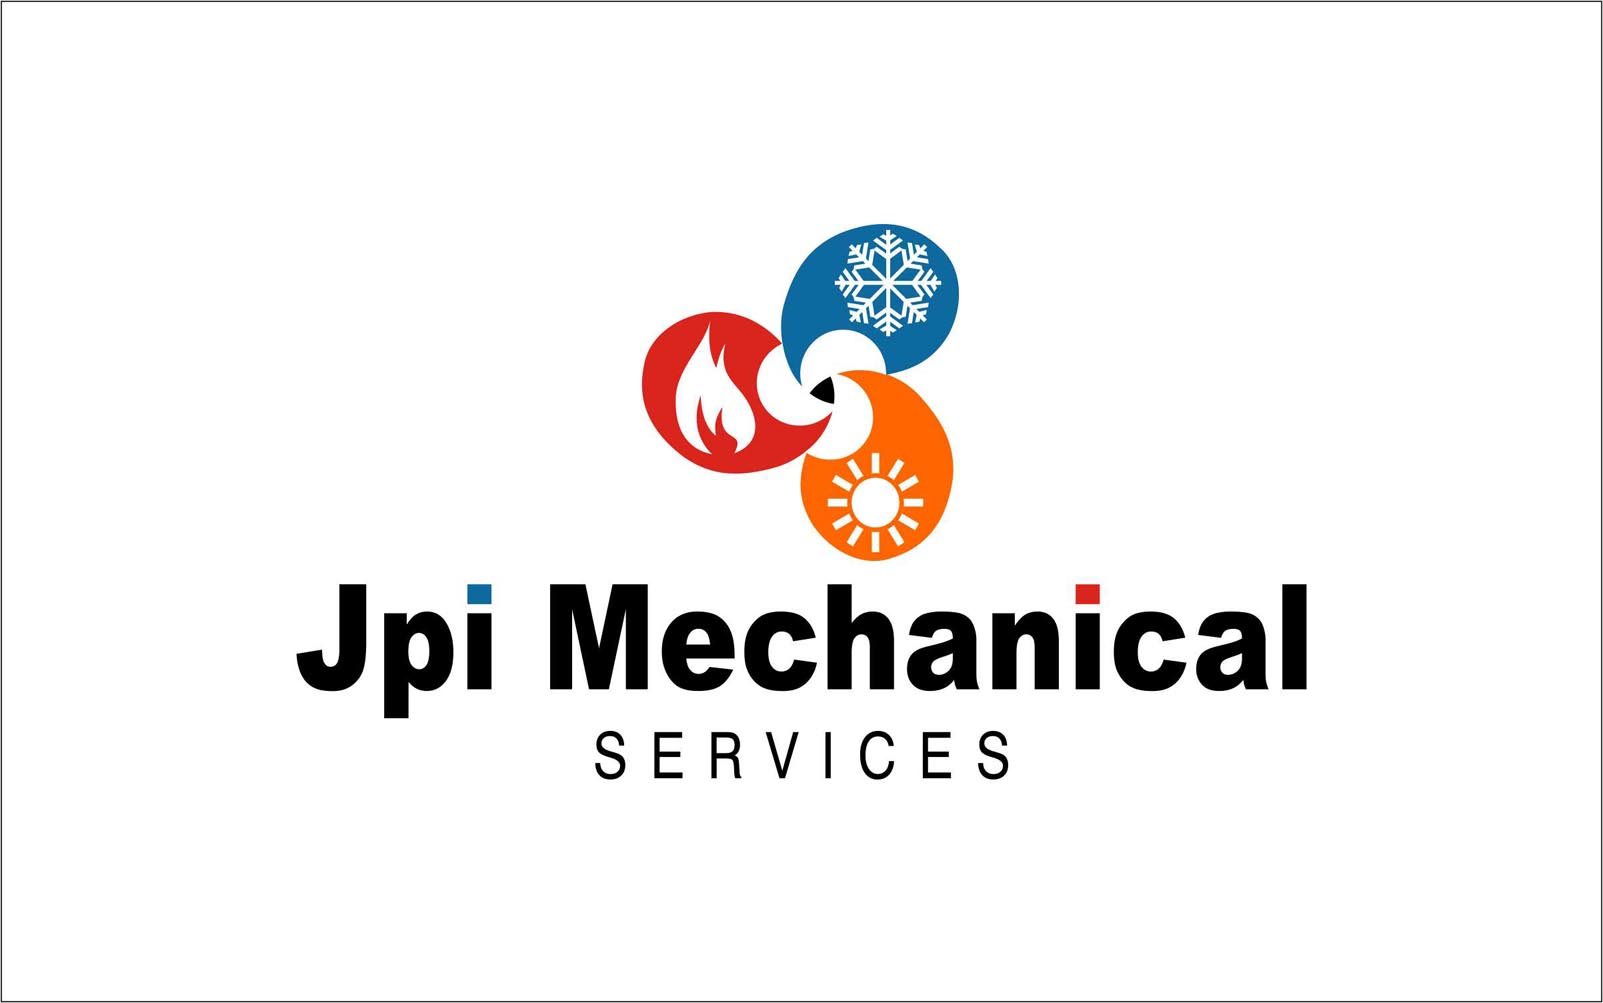 Logo Design by Niraj Dhimmar - Entry No. 115 in the Logo Design Contest Inspiring Logo Design for JPI Mecanical Services.